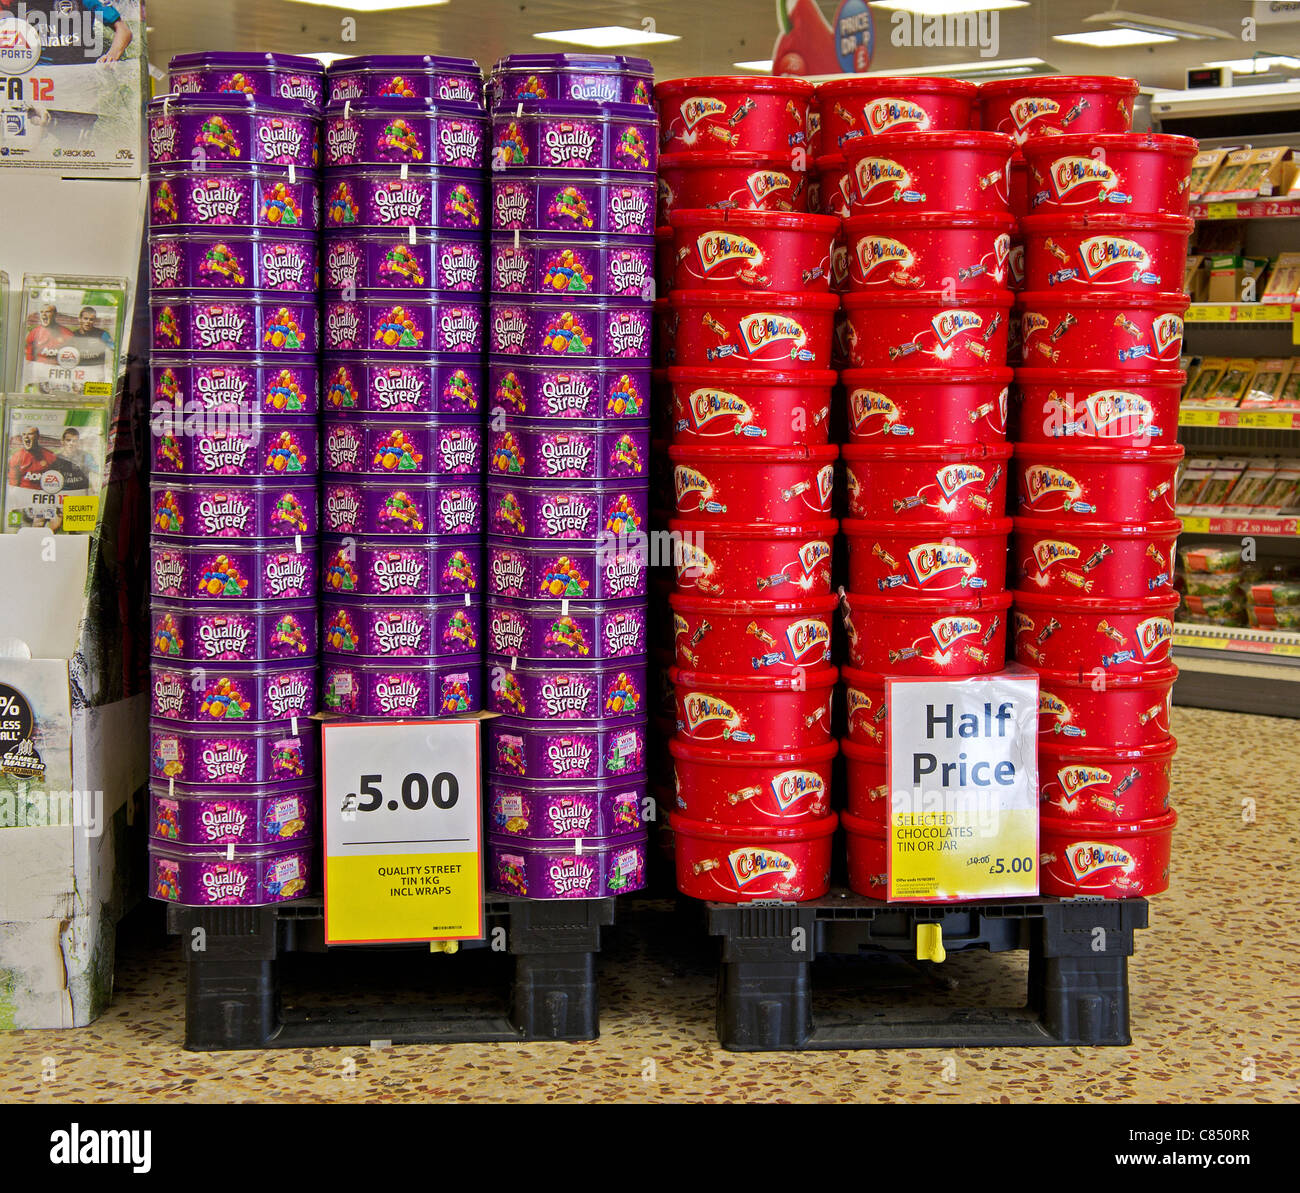 Tins of christmas sweets for sale in a tesco supermarket, uk - Stock Image